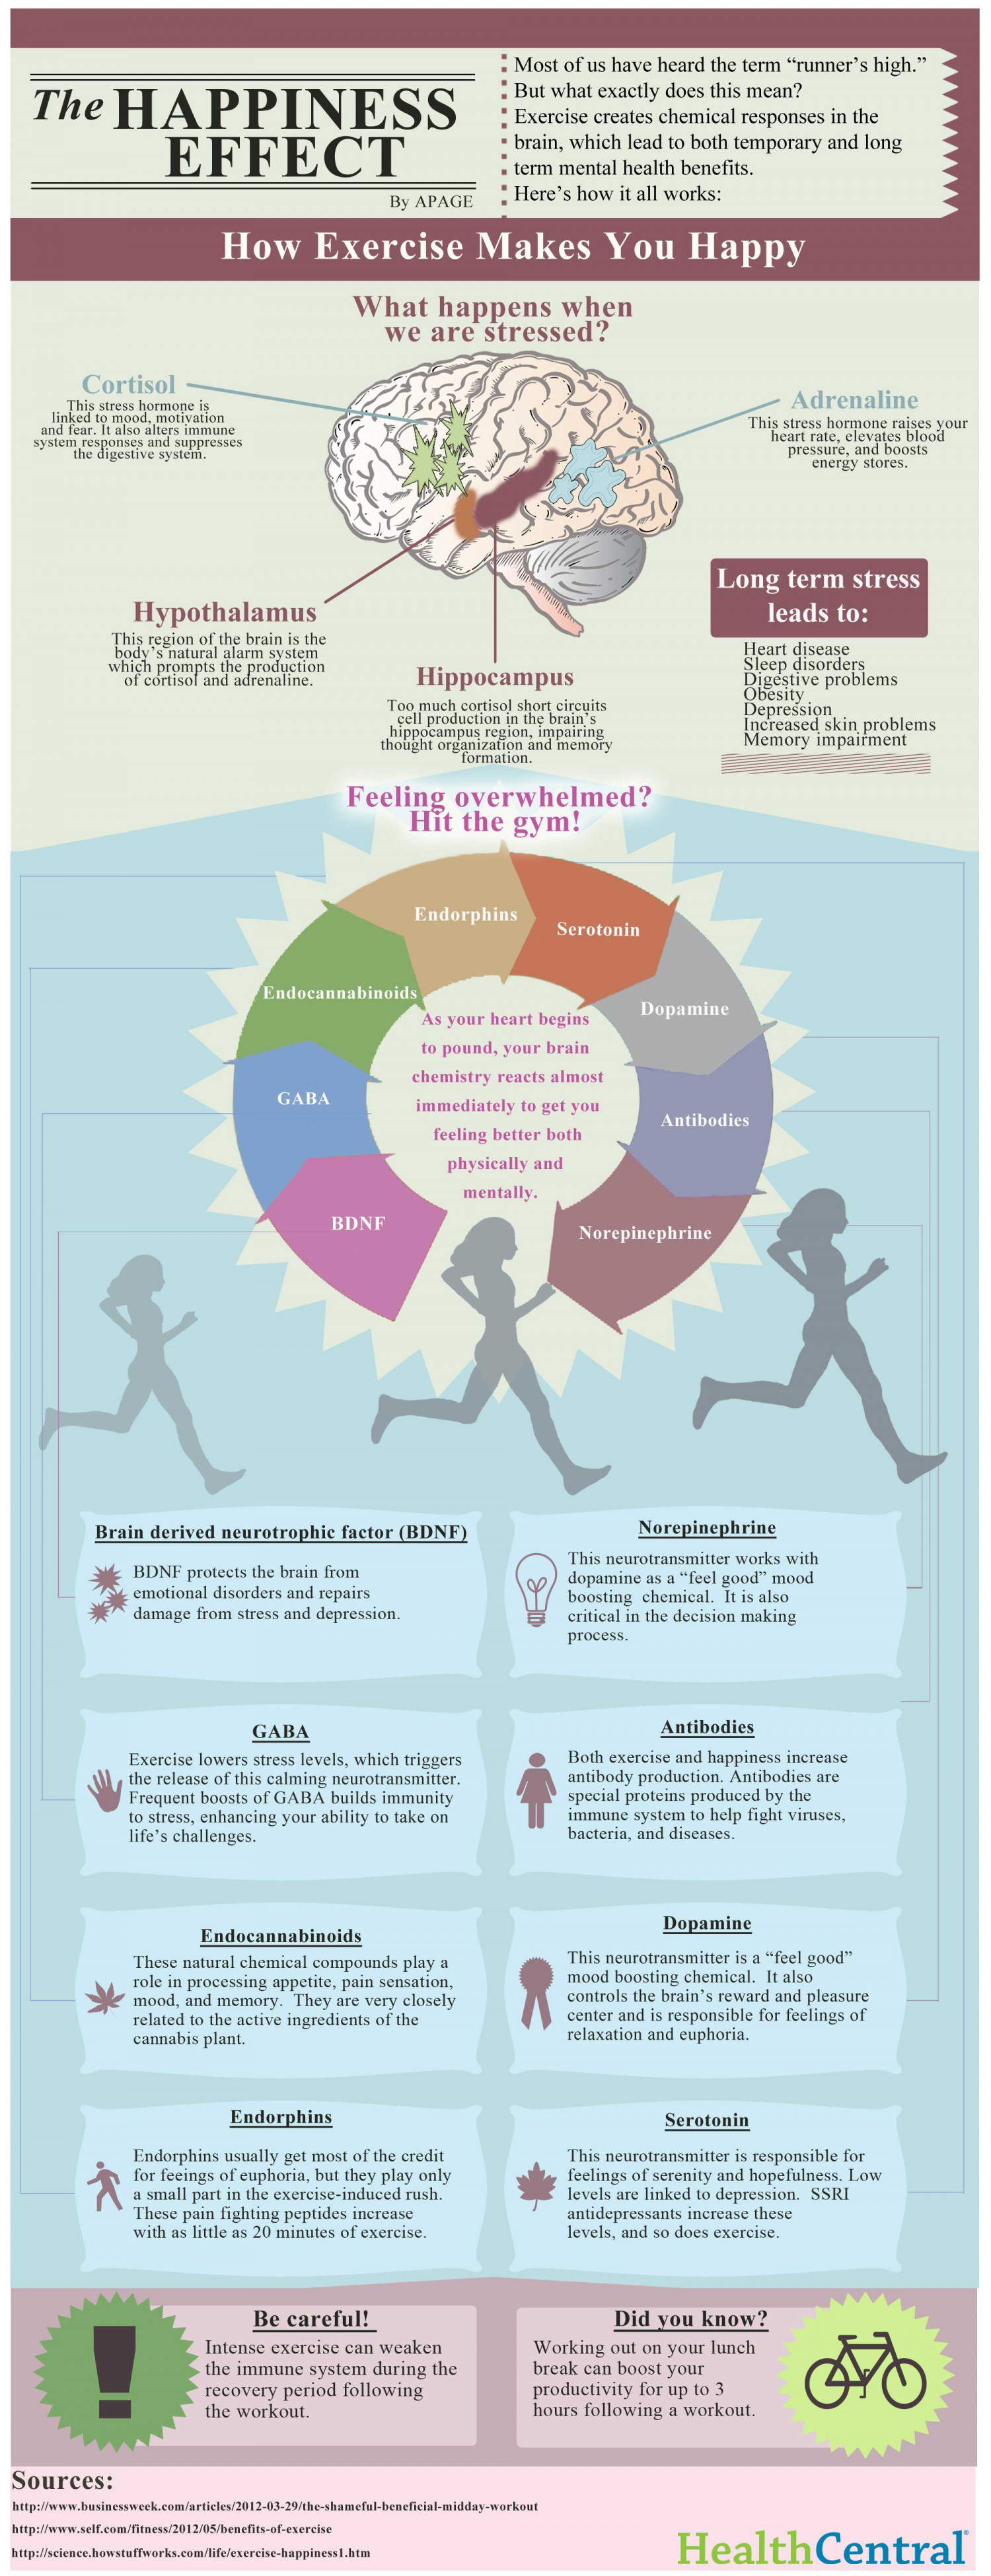 The Happiness Effect: How Exercise Makes You Happy Infographic